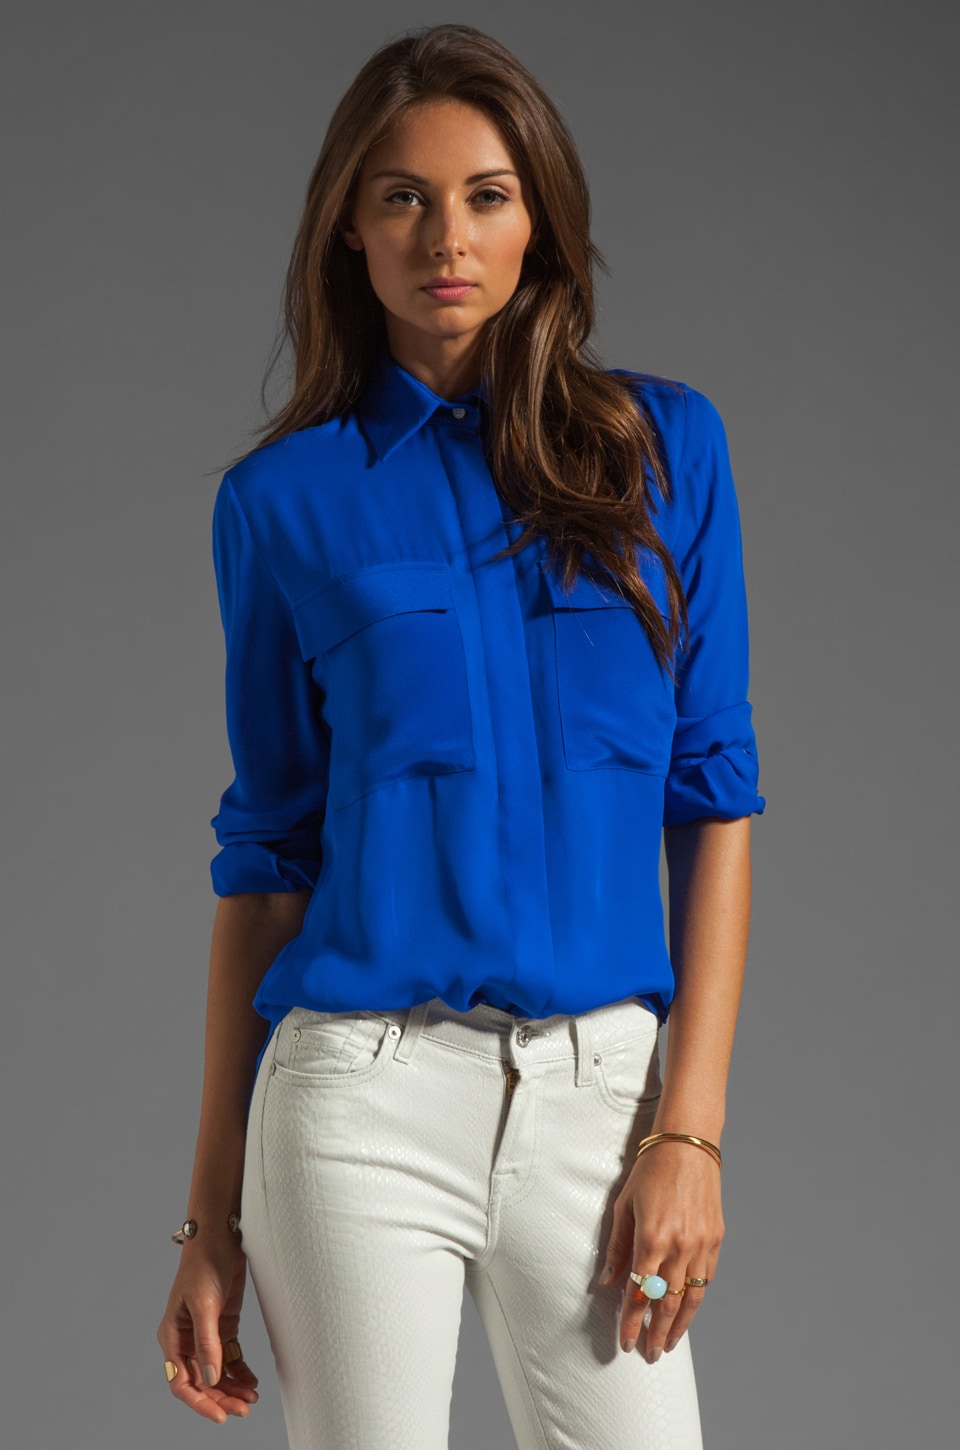 MAX FOWLES 2 Pocket Blouse in Blue